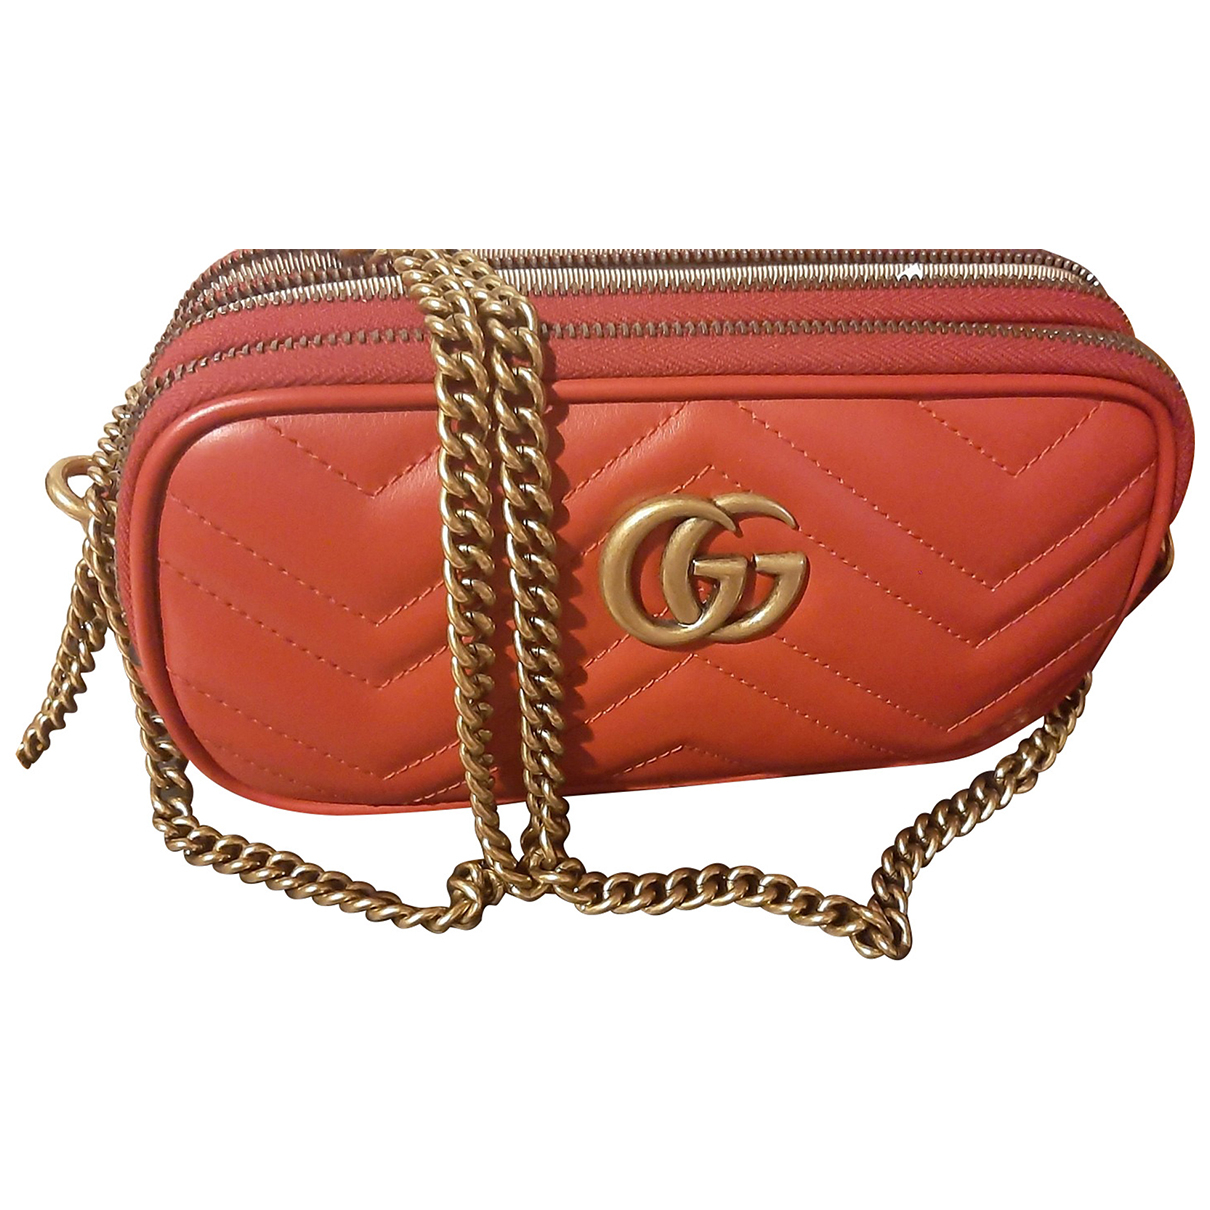 Gucci Marmont Handtasche in  Rot Leder